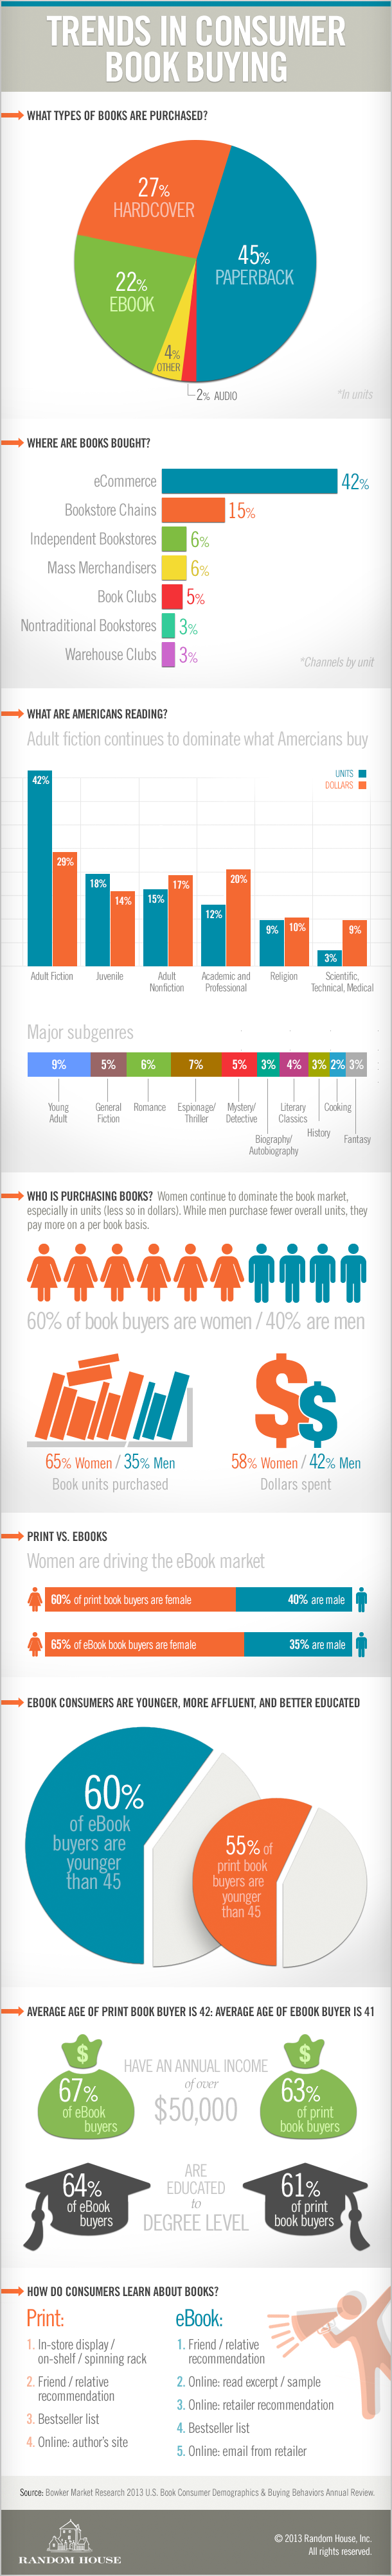 Consumer eBook Purchase Trends